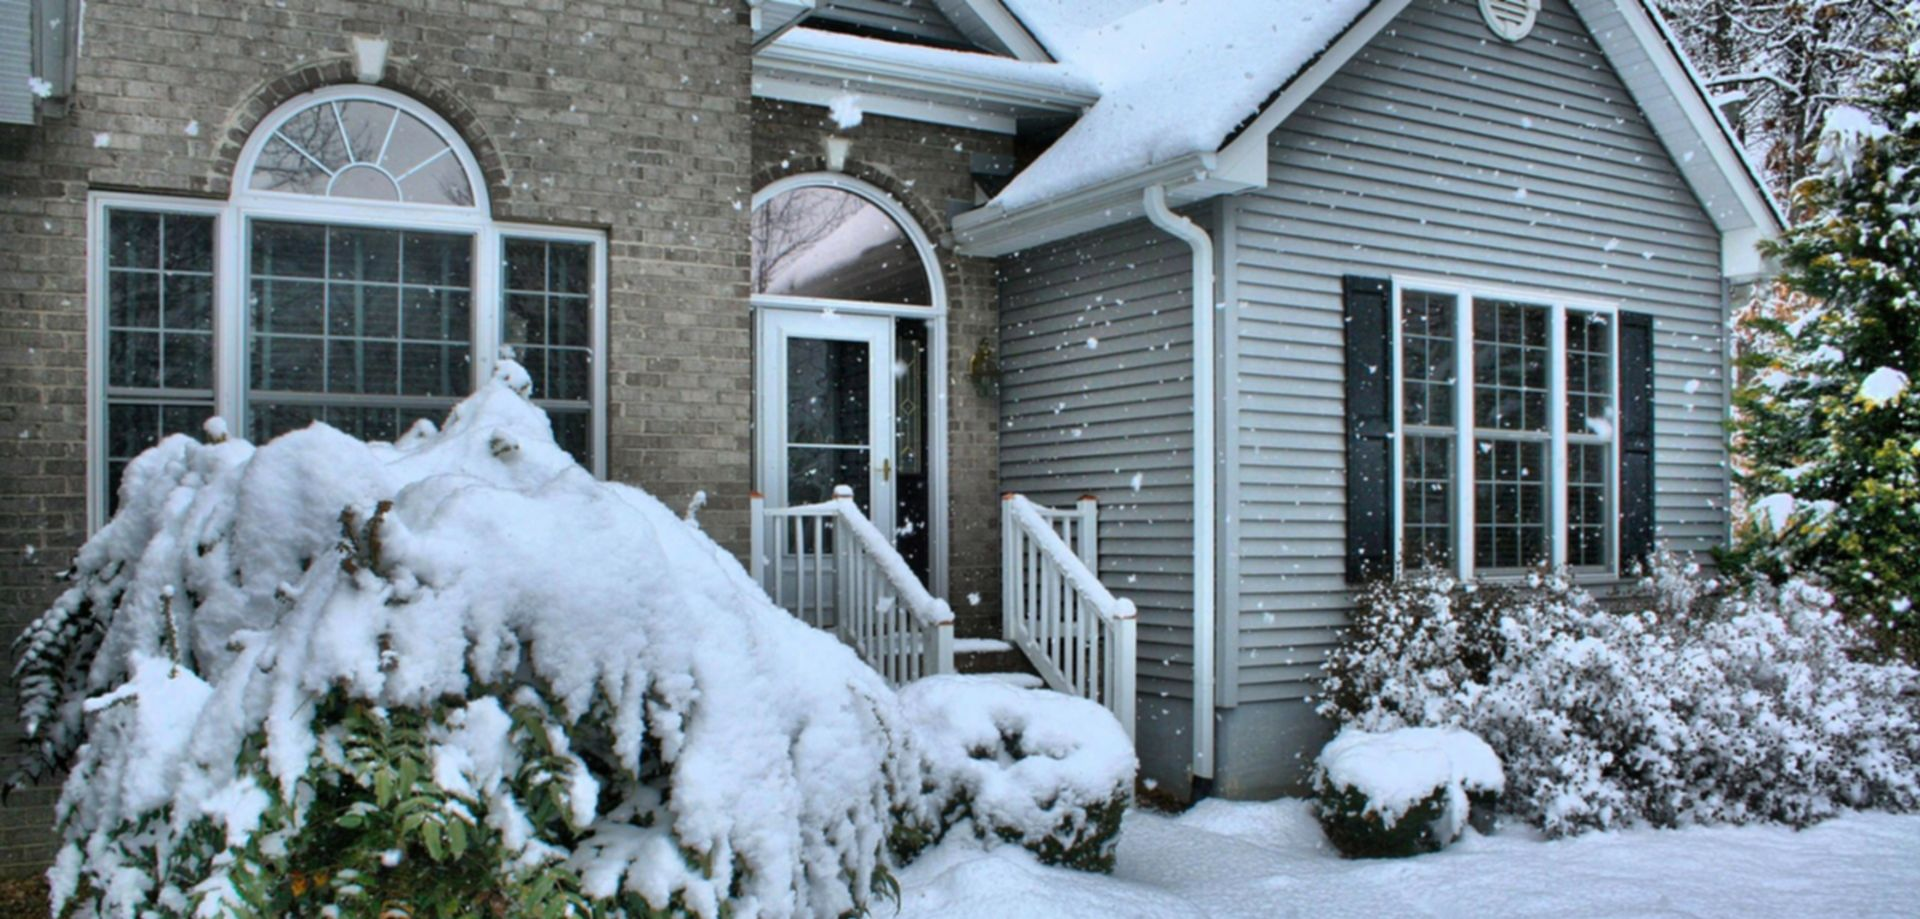 5 Tips to Get Your Home Ready for Winter Weather